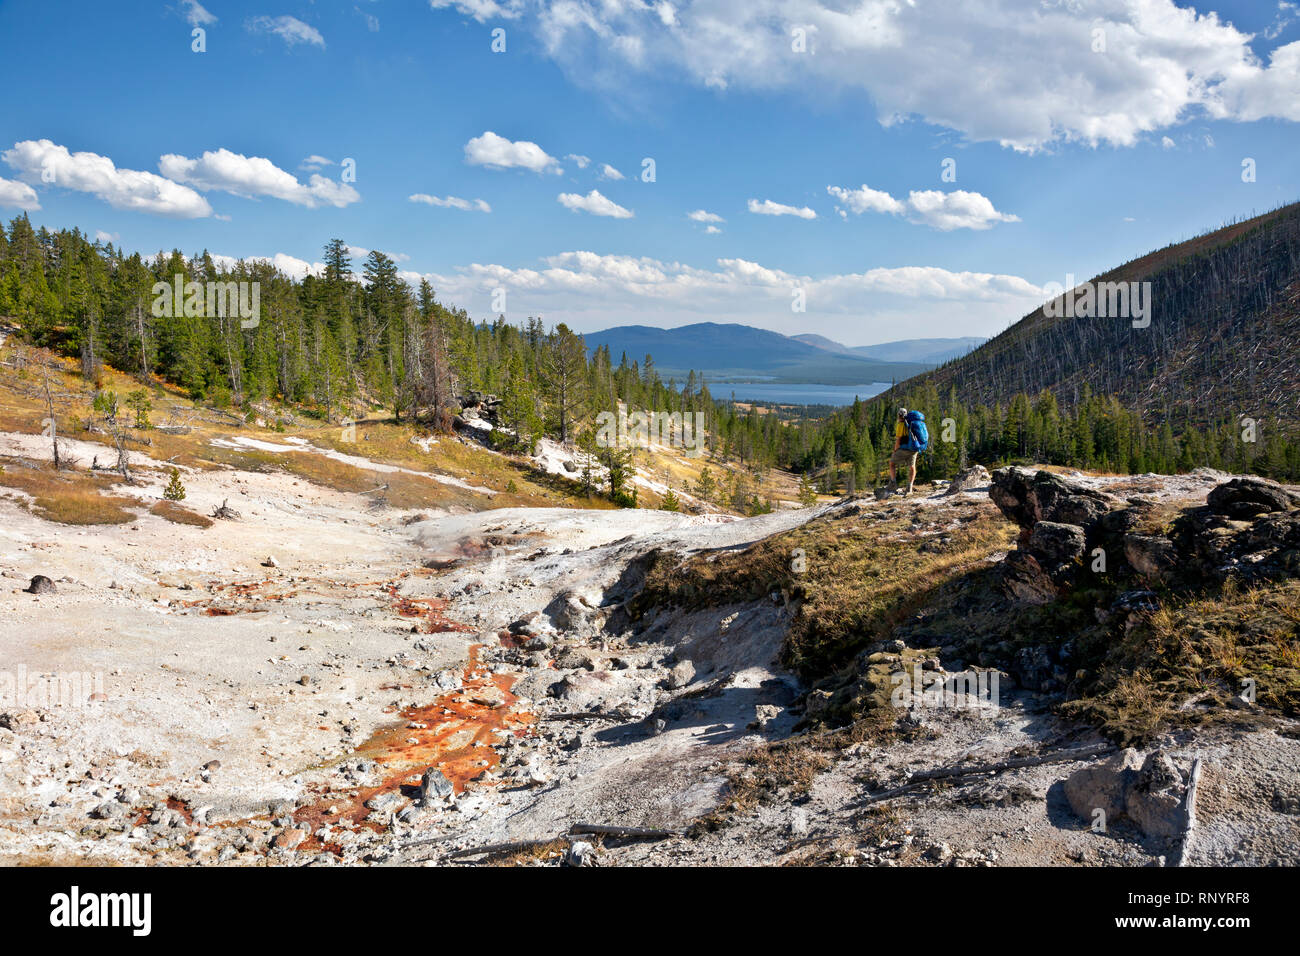 WY03818-00...WYOMING - Hiker at the Upper thermal area along the trail to Heart Lake and the Heart Lake Geyser Basin in Yellowstone National Park. - Stock Image